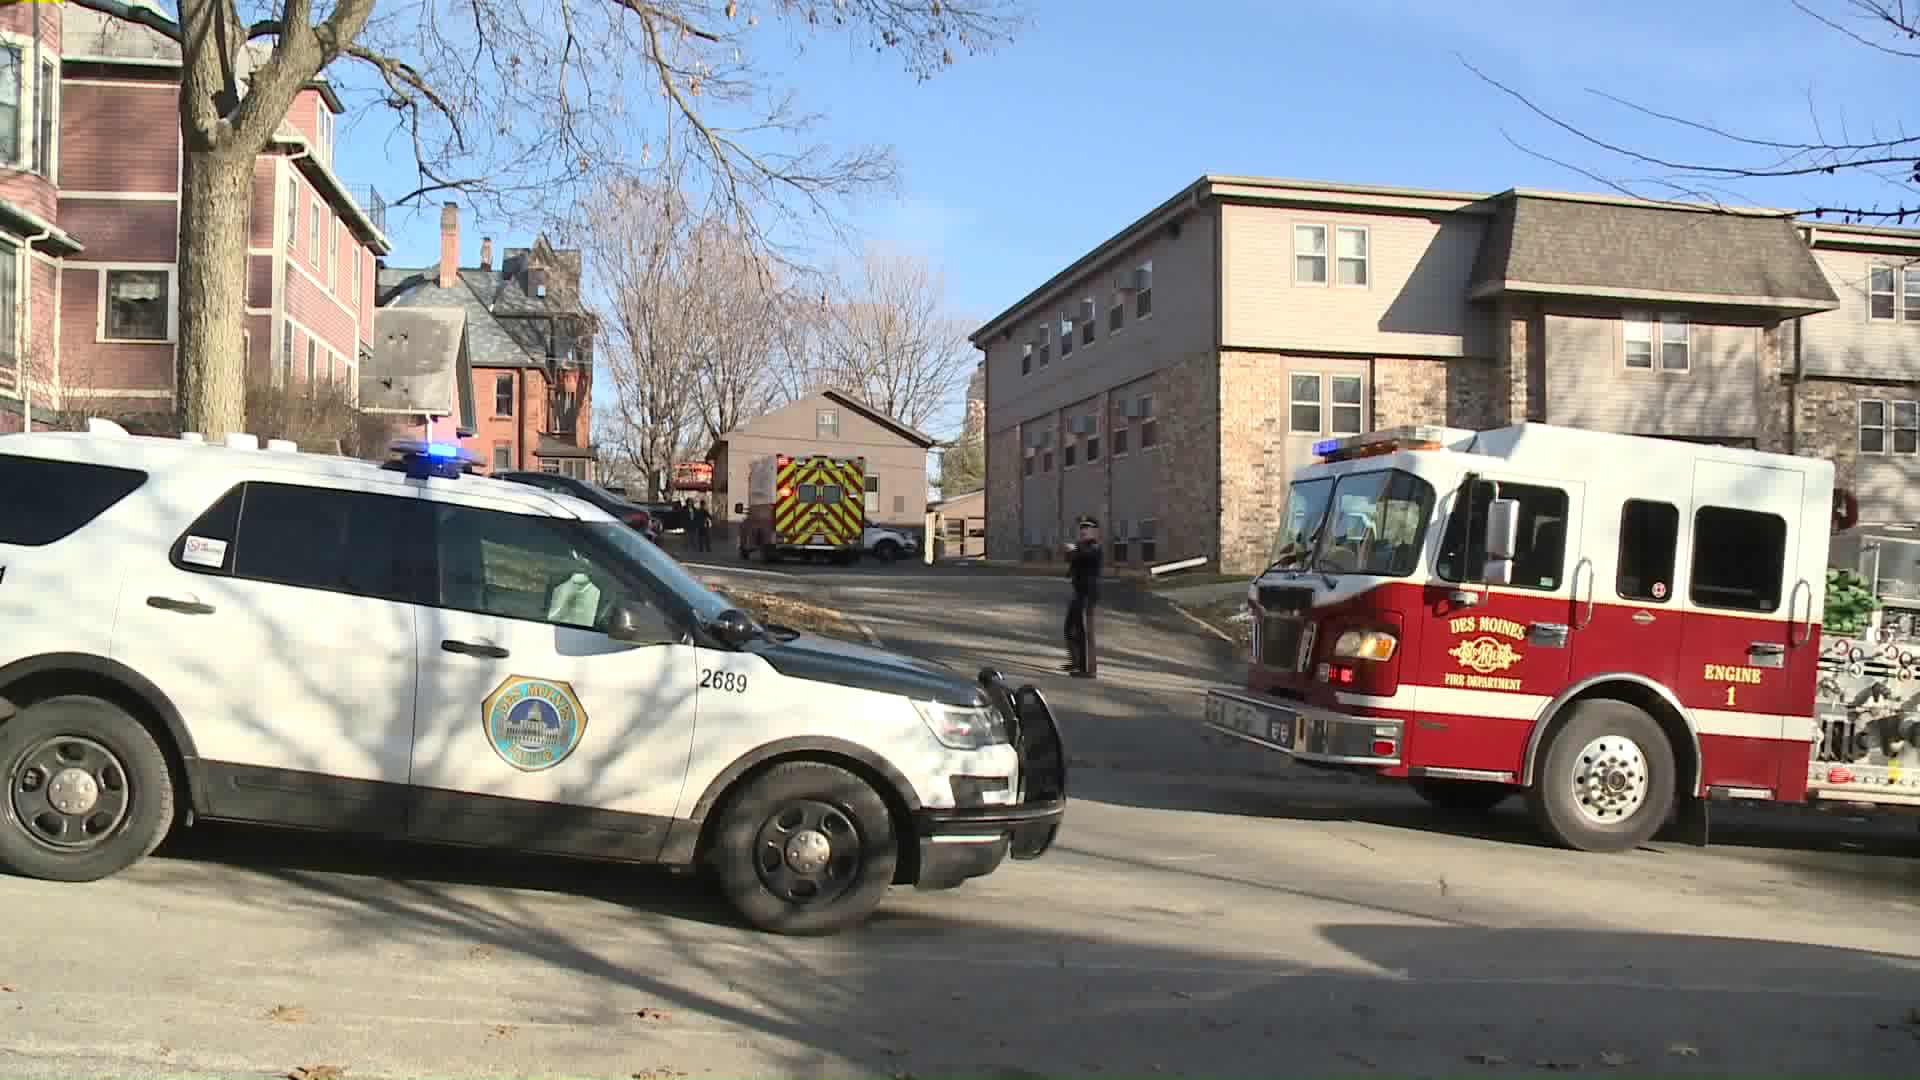 Sherman Hill Neighborhood Reacts as Police Investigate Suspicious Death 1